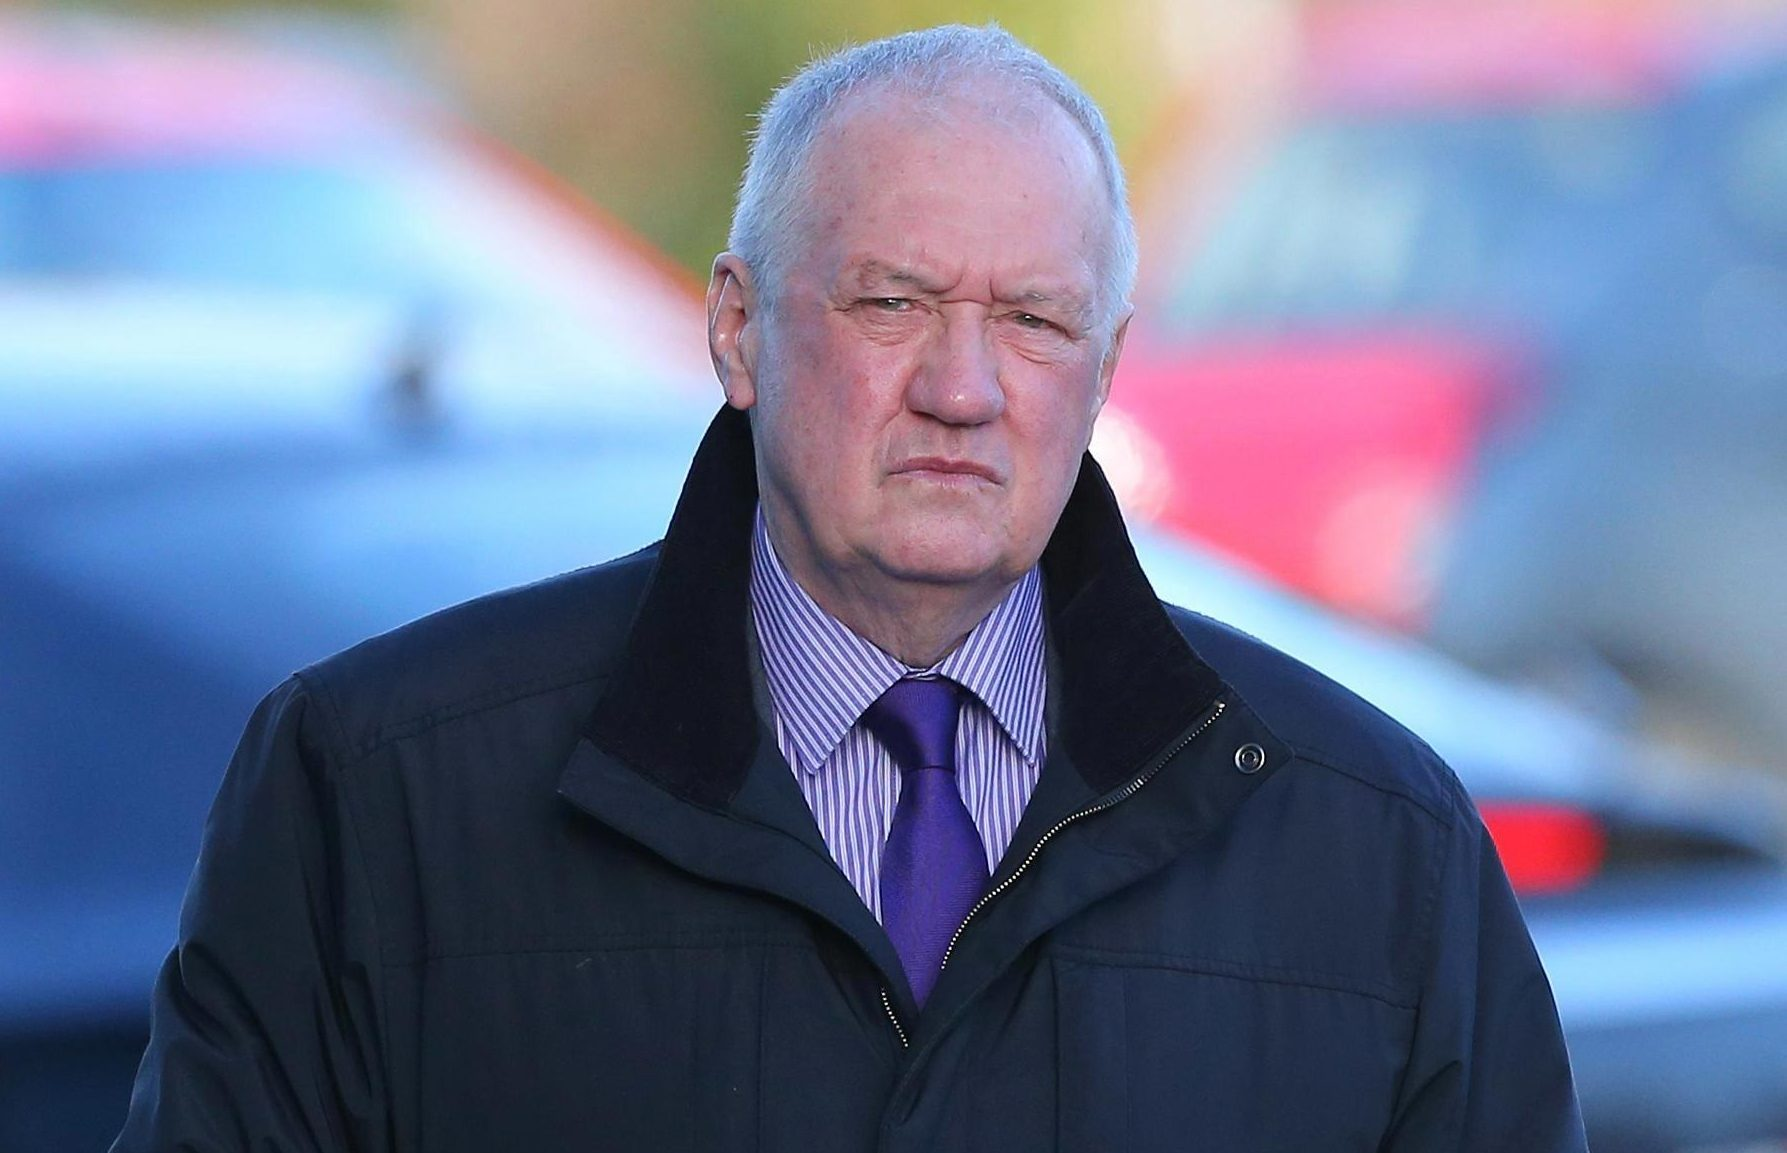 Hillsborough disaster police chief David Duckenfield WILL face trial for manslaughter